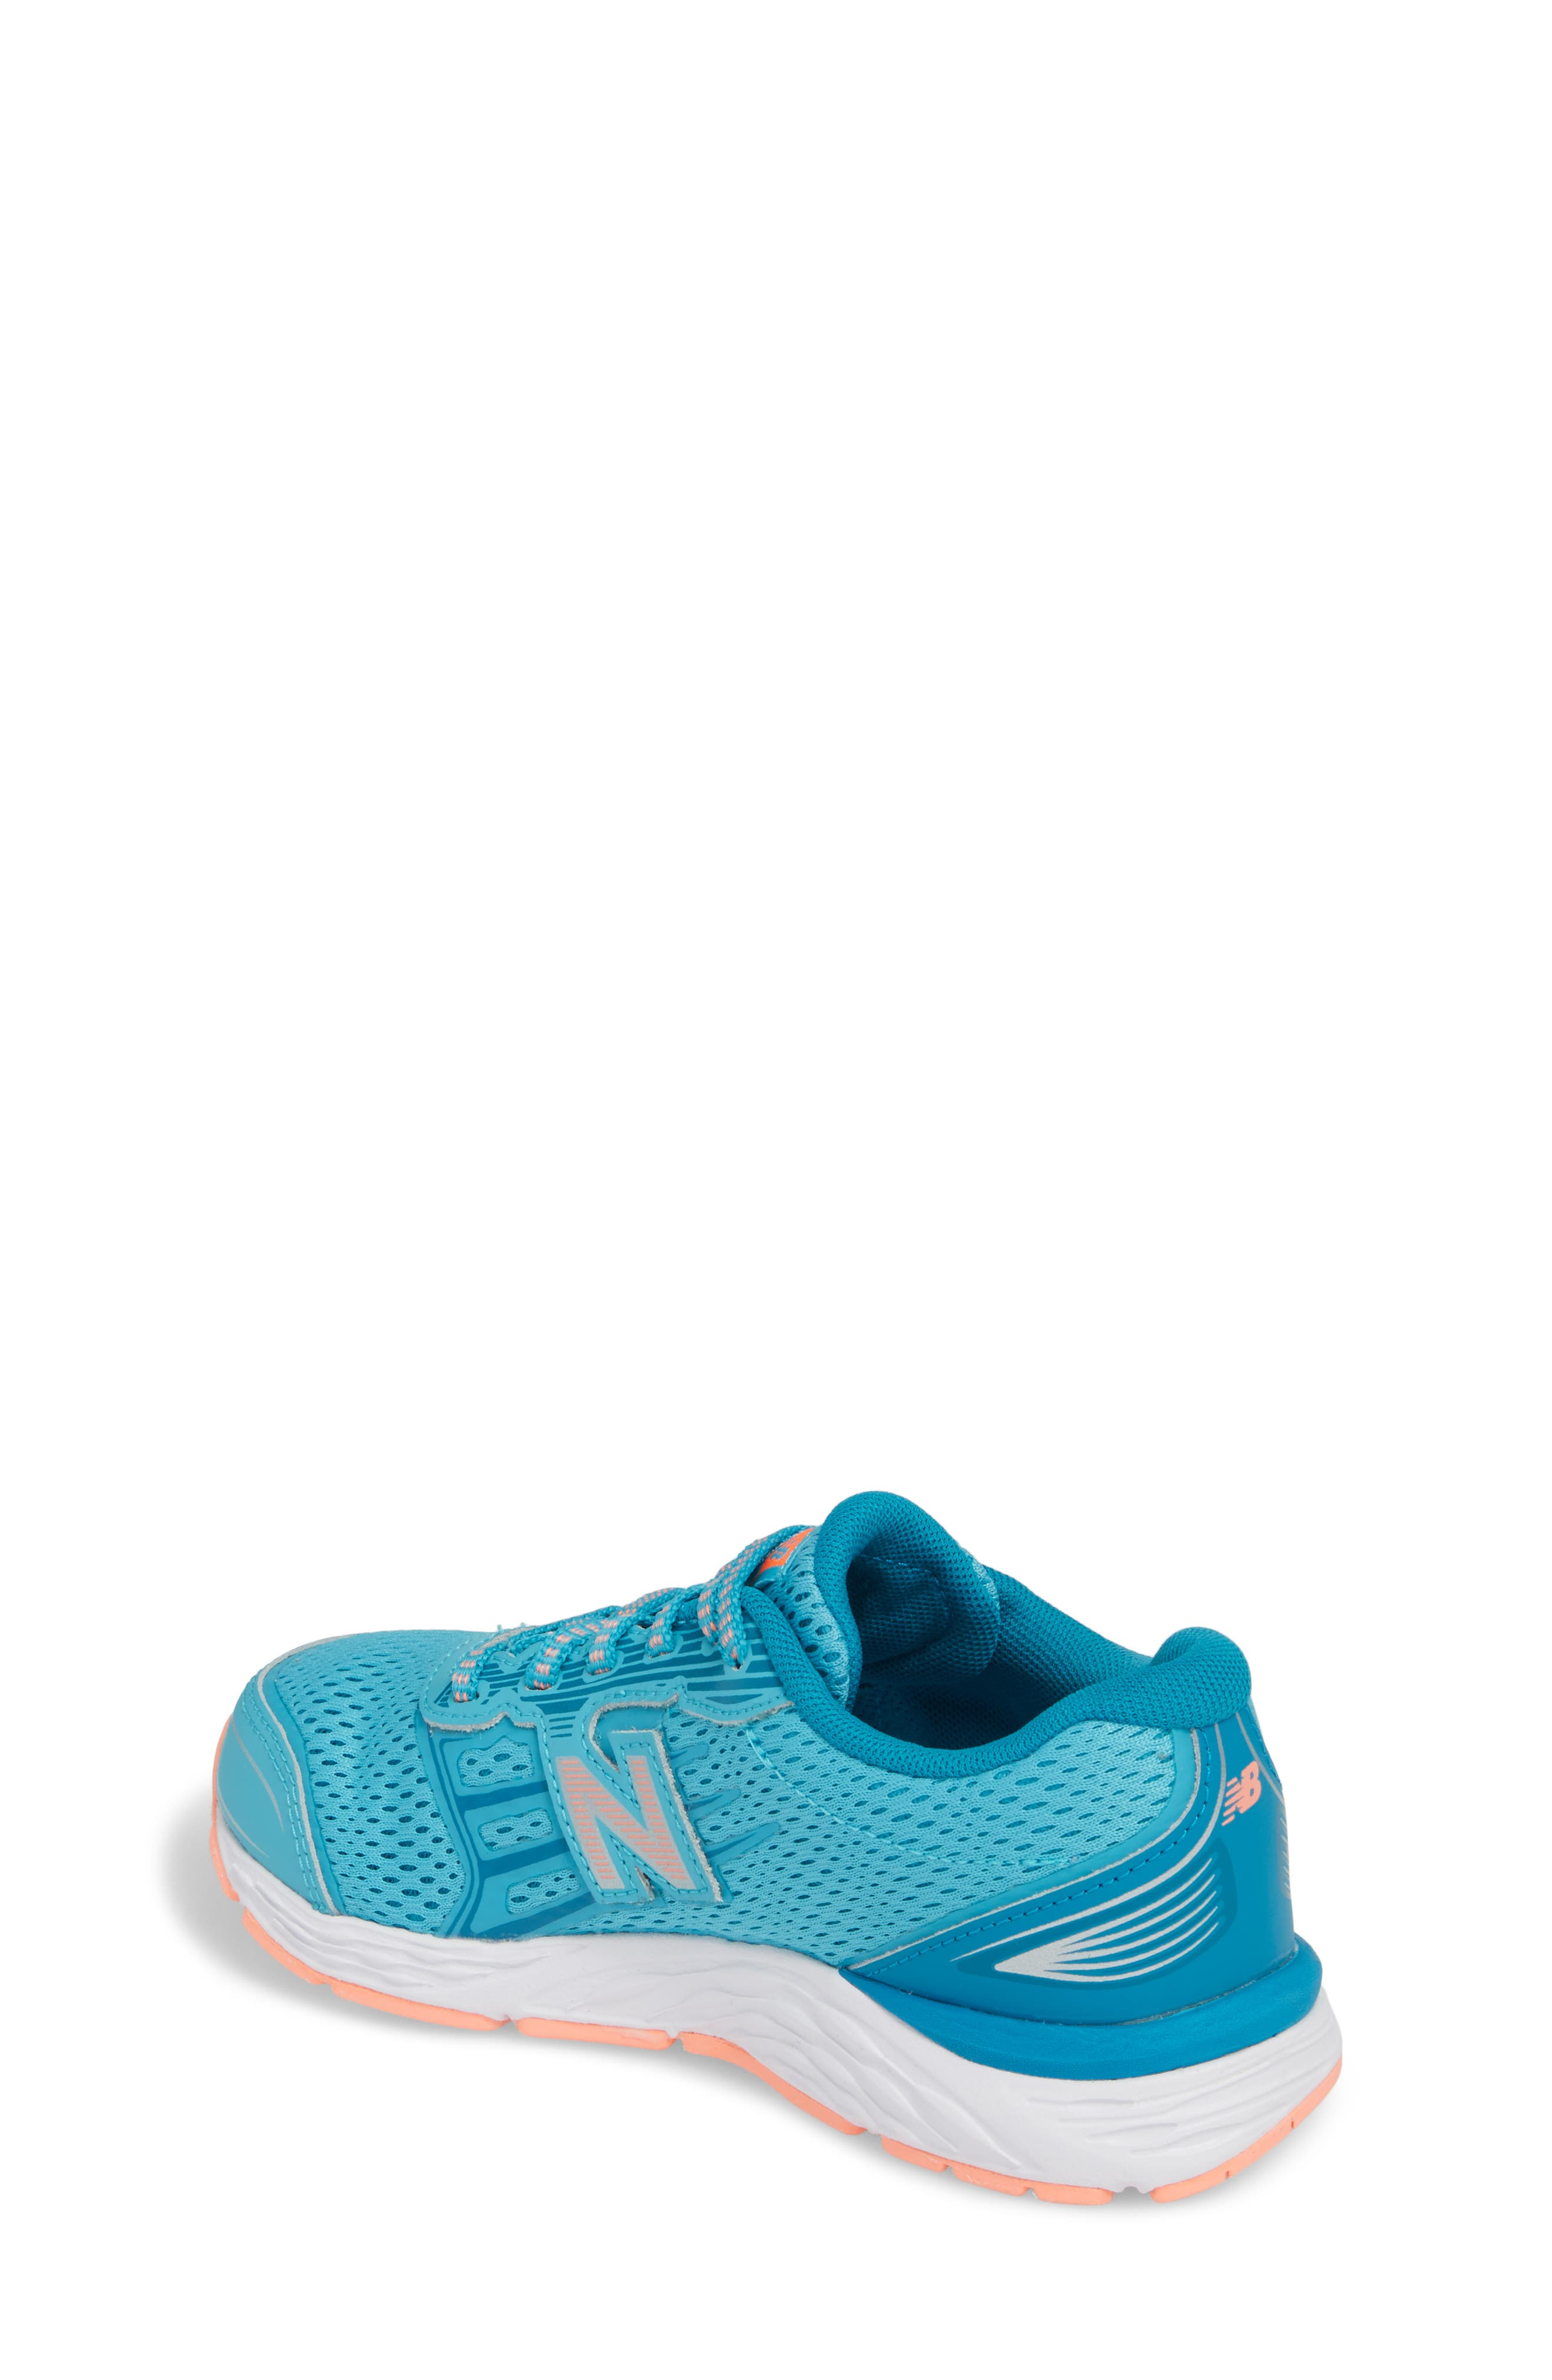 680v5 Running Shoe,                             Alternate thumbnail 2, color,                             DEEP OZONE BLUE